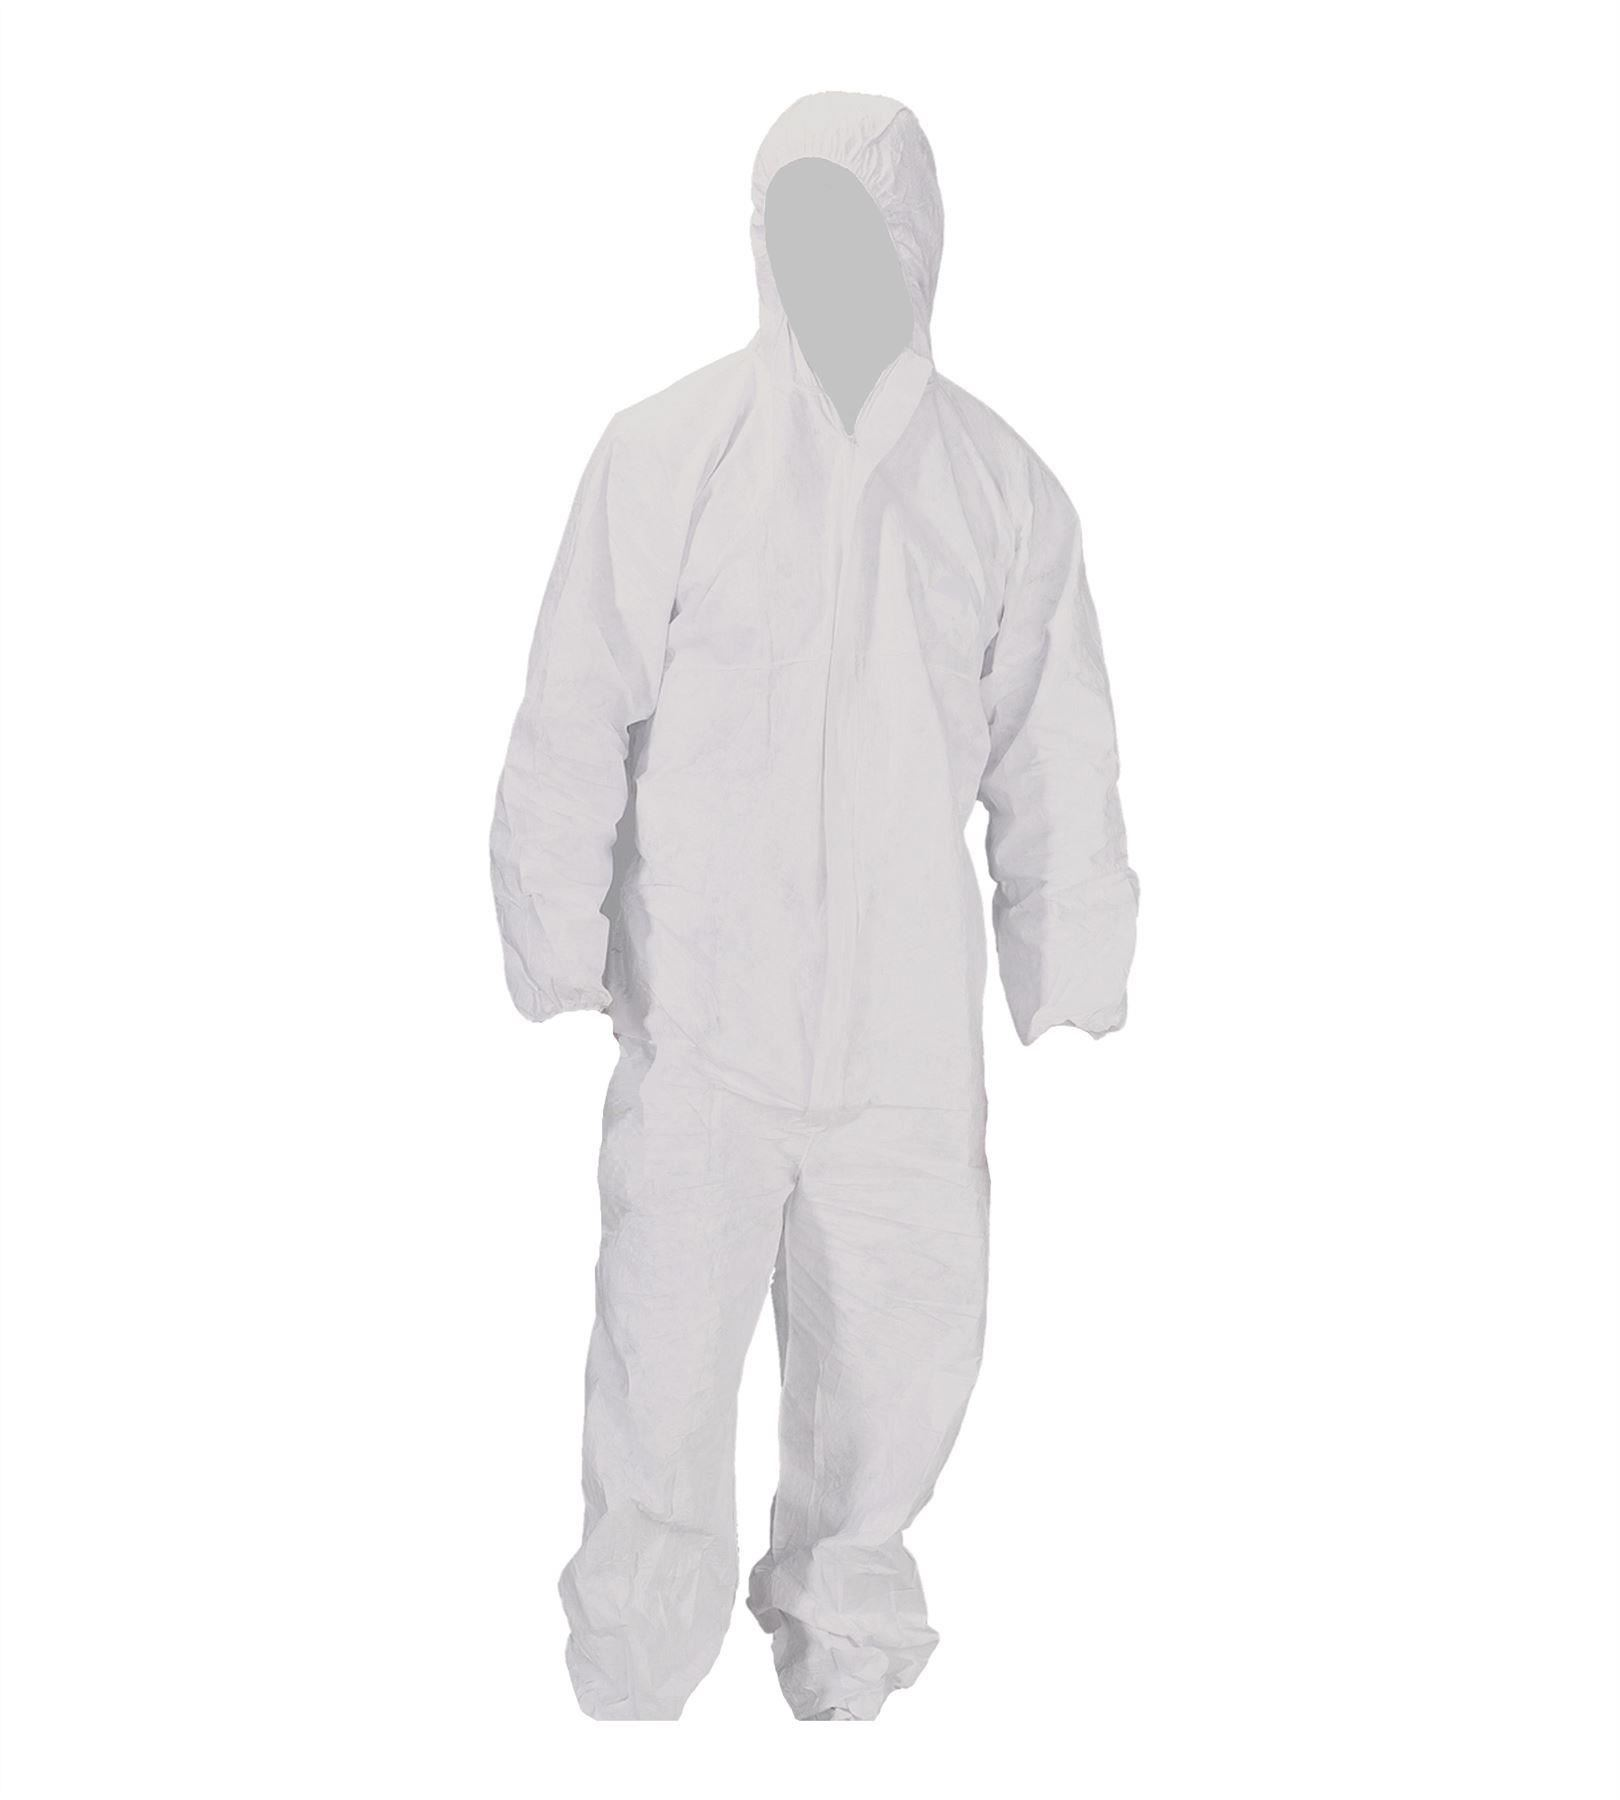 White pinafore apron ebay - White Polyprop Overalls Suit Painting Mechanic Engineer Disposable